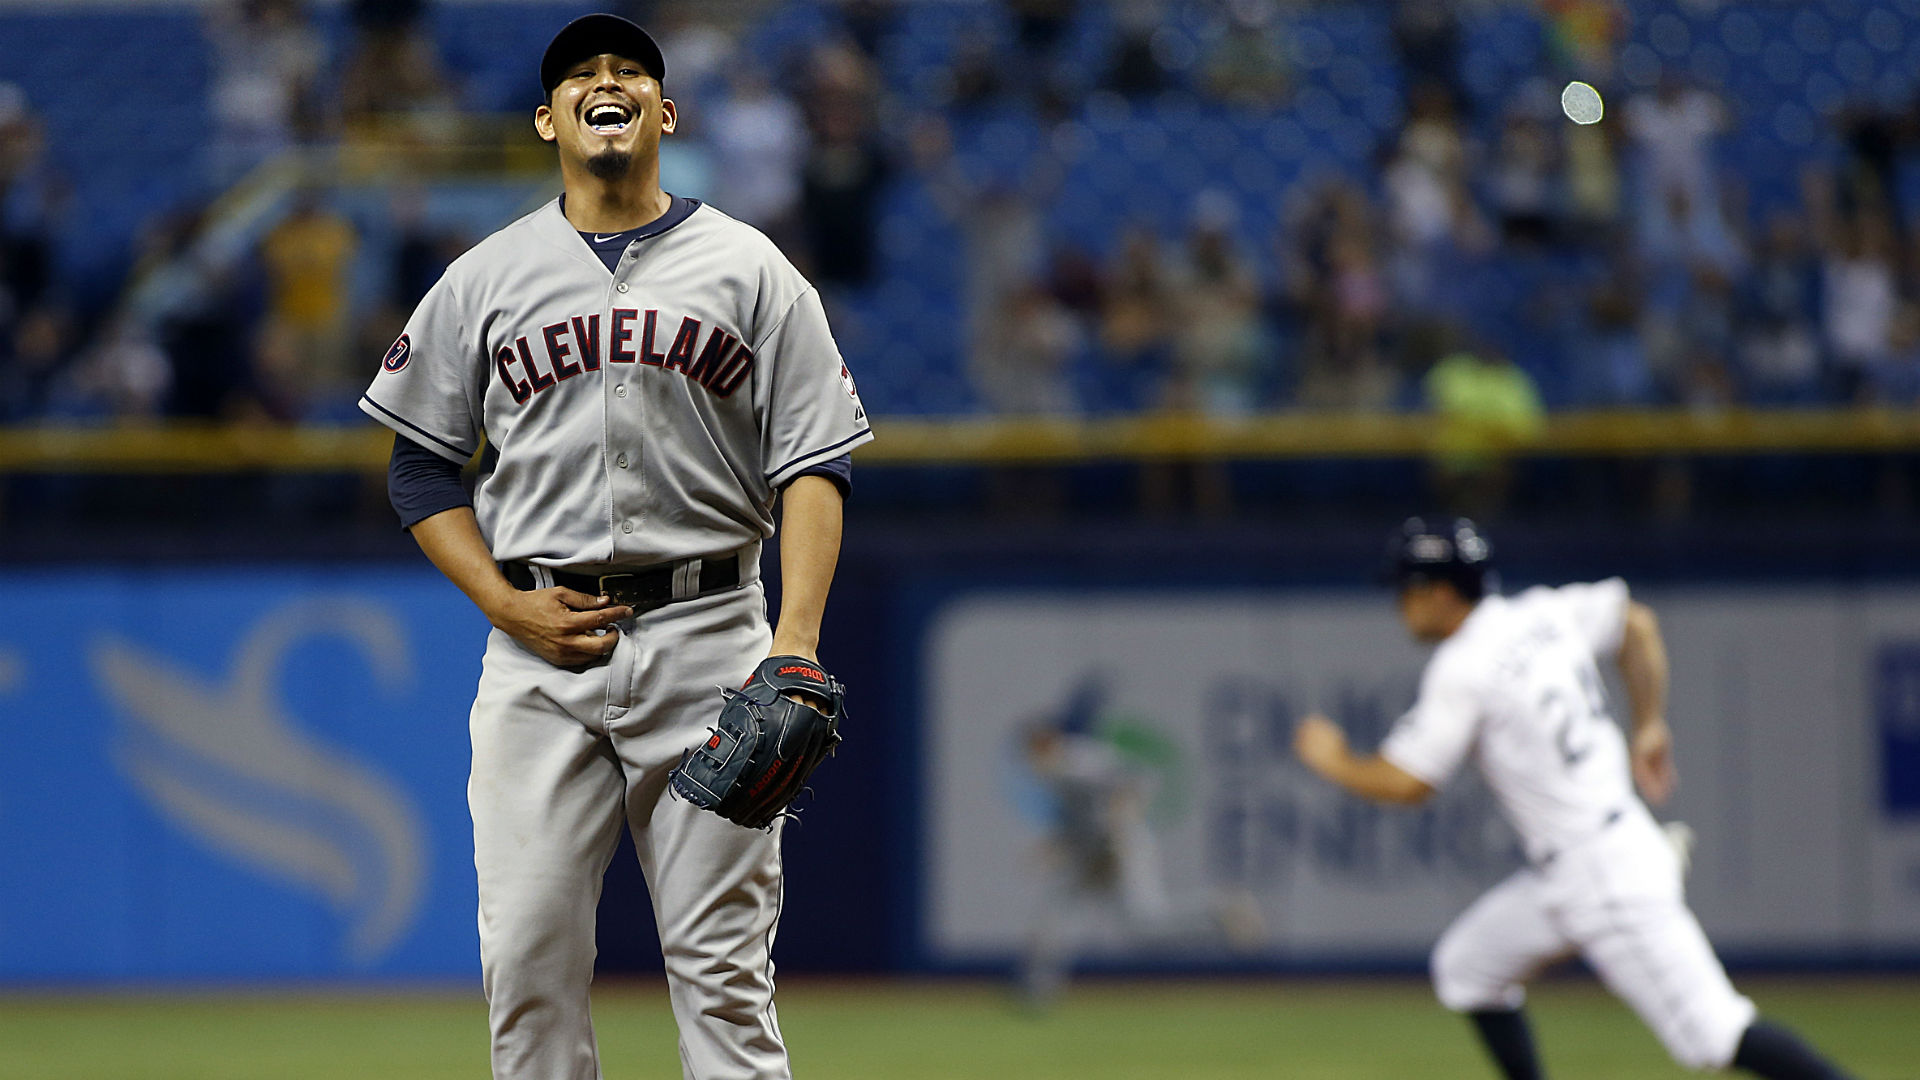 Carlos Carrasco reacts after losing no-hitter